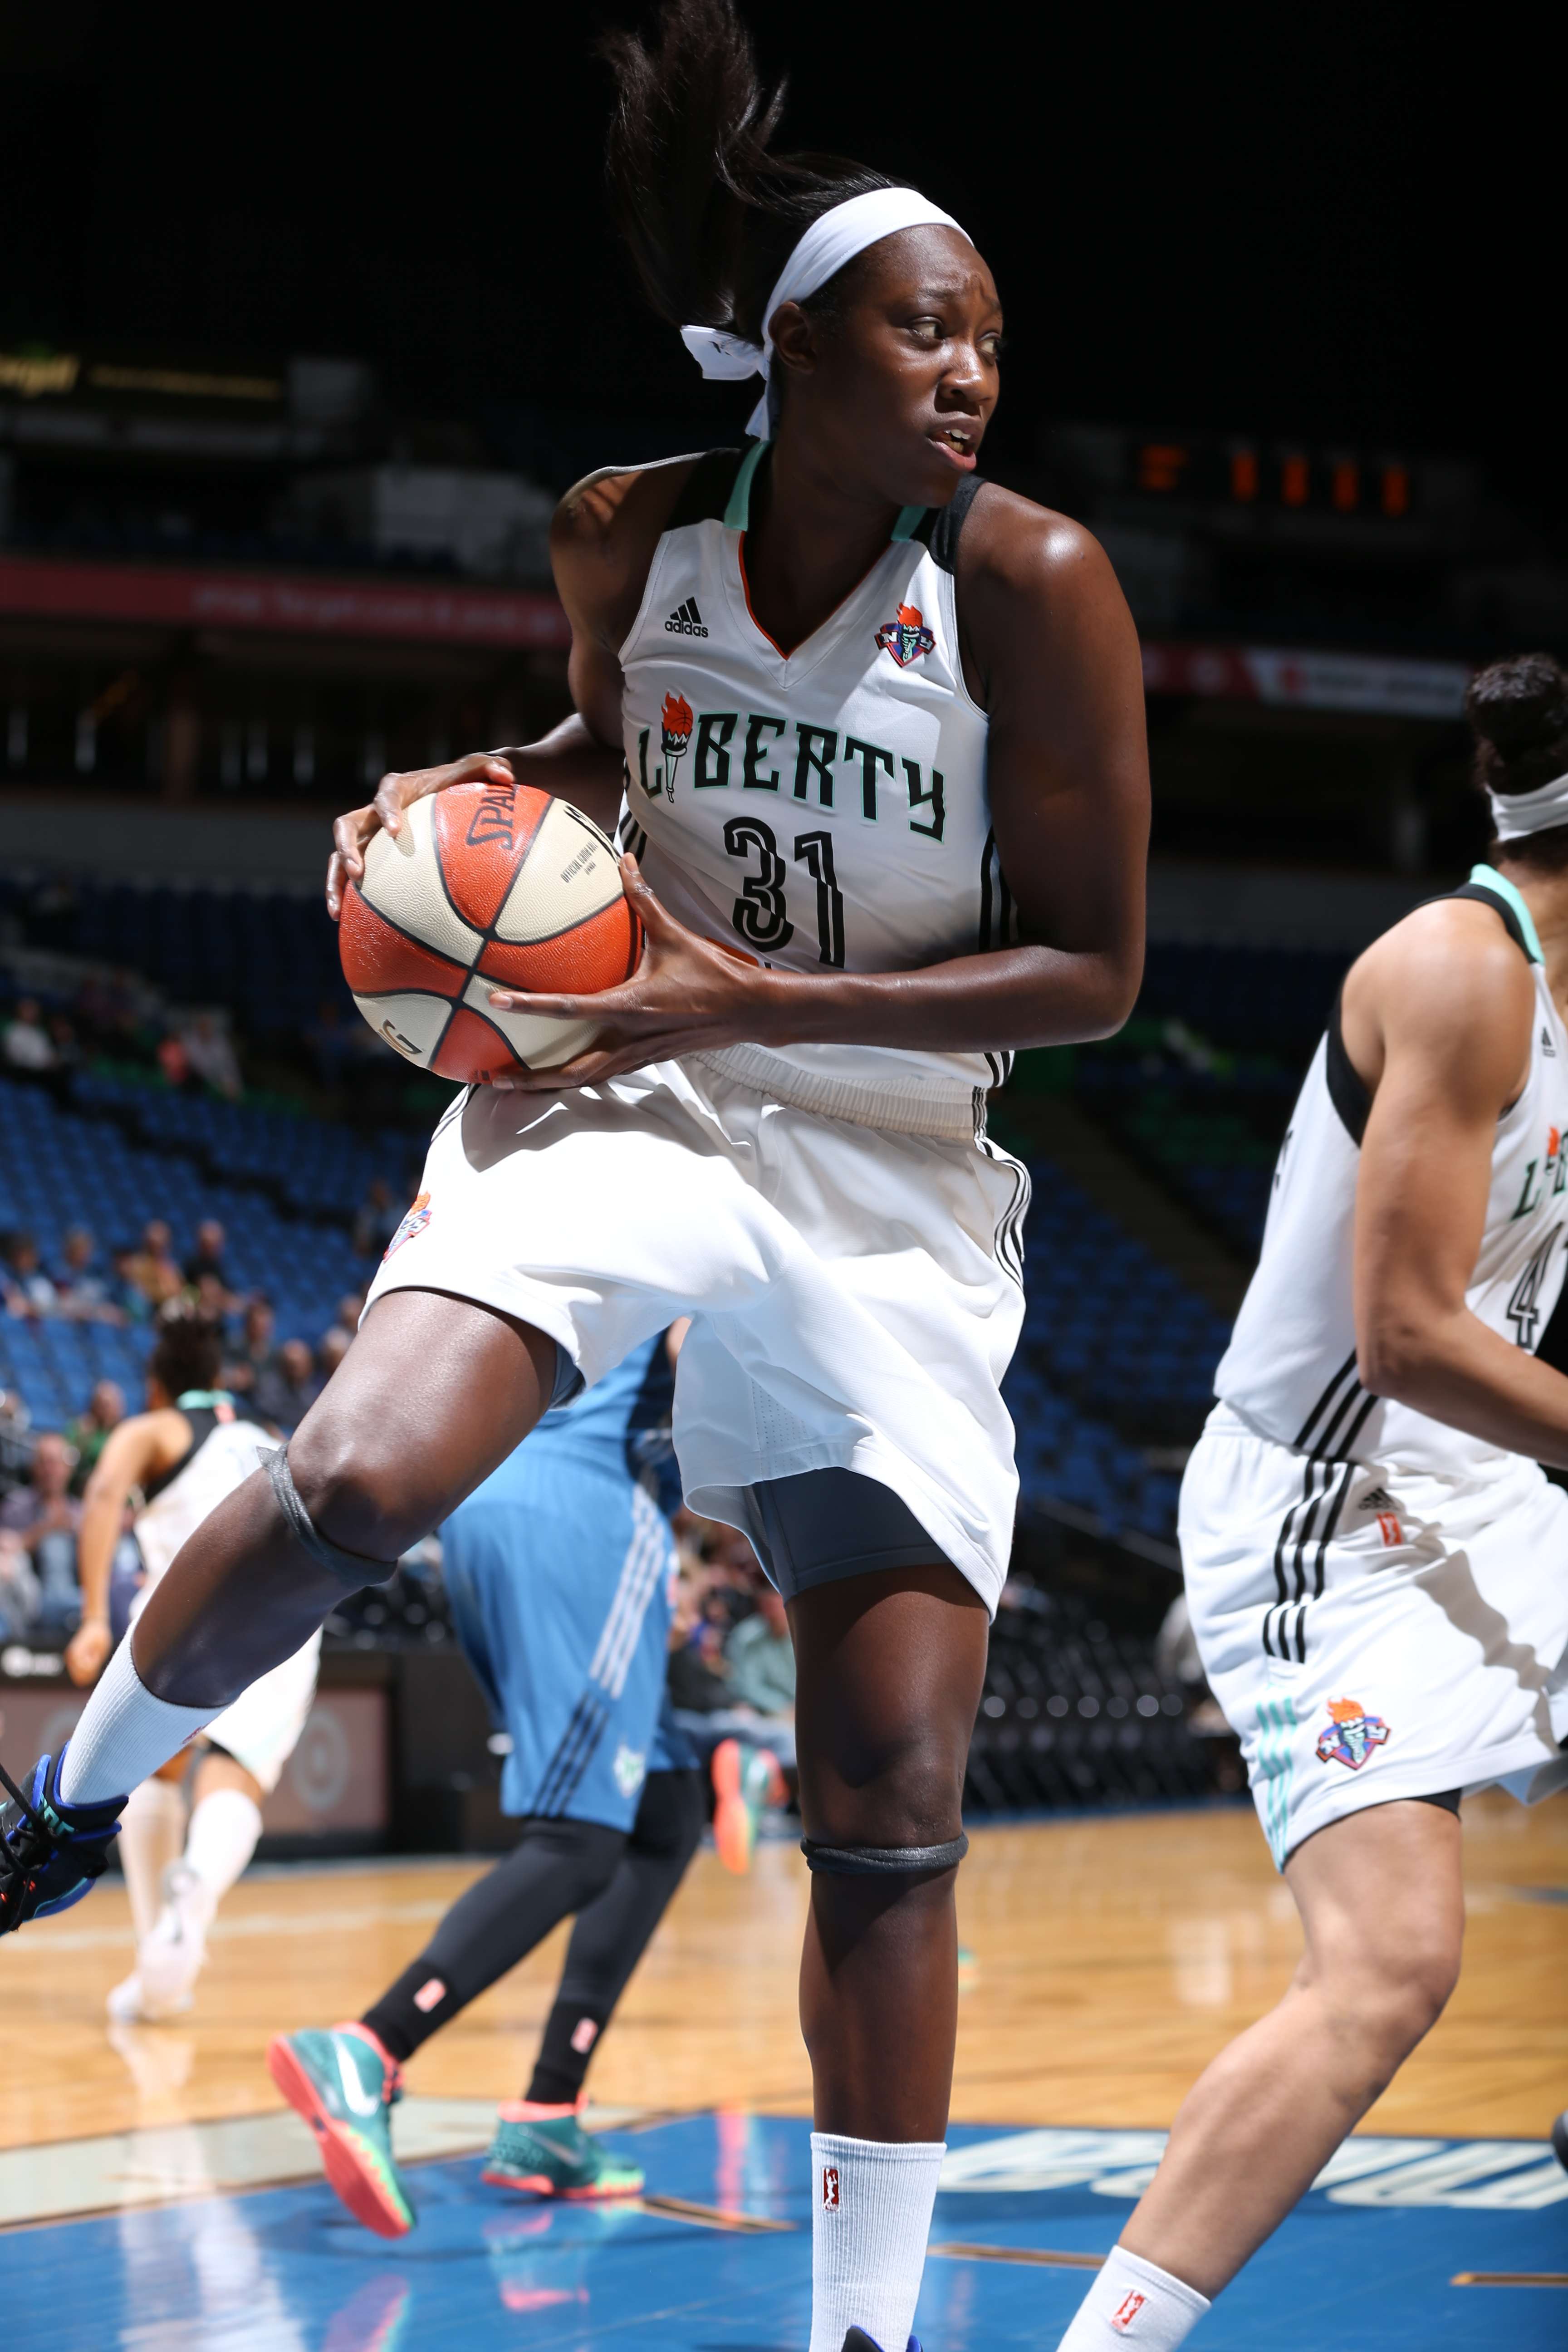 MINNEAPOLIS, MN - JUNE 1:  Tina Charles #31 of the New York Liberty grabs the rebound against the Minnesota Lynx on June 1, 2015 at Target Center in Minneapolis, Minnesota. NOTE TO USER: User expressly acknowledges and agrees that, by downloading and or using this Photograph, user is consenting to the terms and conditions of the Getty Images License Agreement. Mandatory Copyright Notice: Copyright 2015 NBAE (Photo by David Sherman/NBAE via Getty Images)